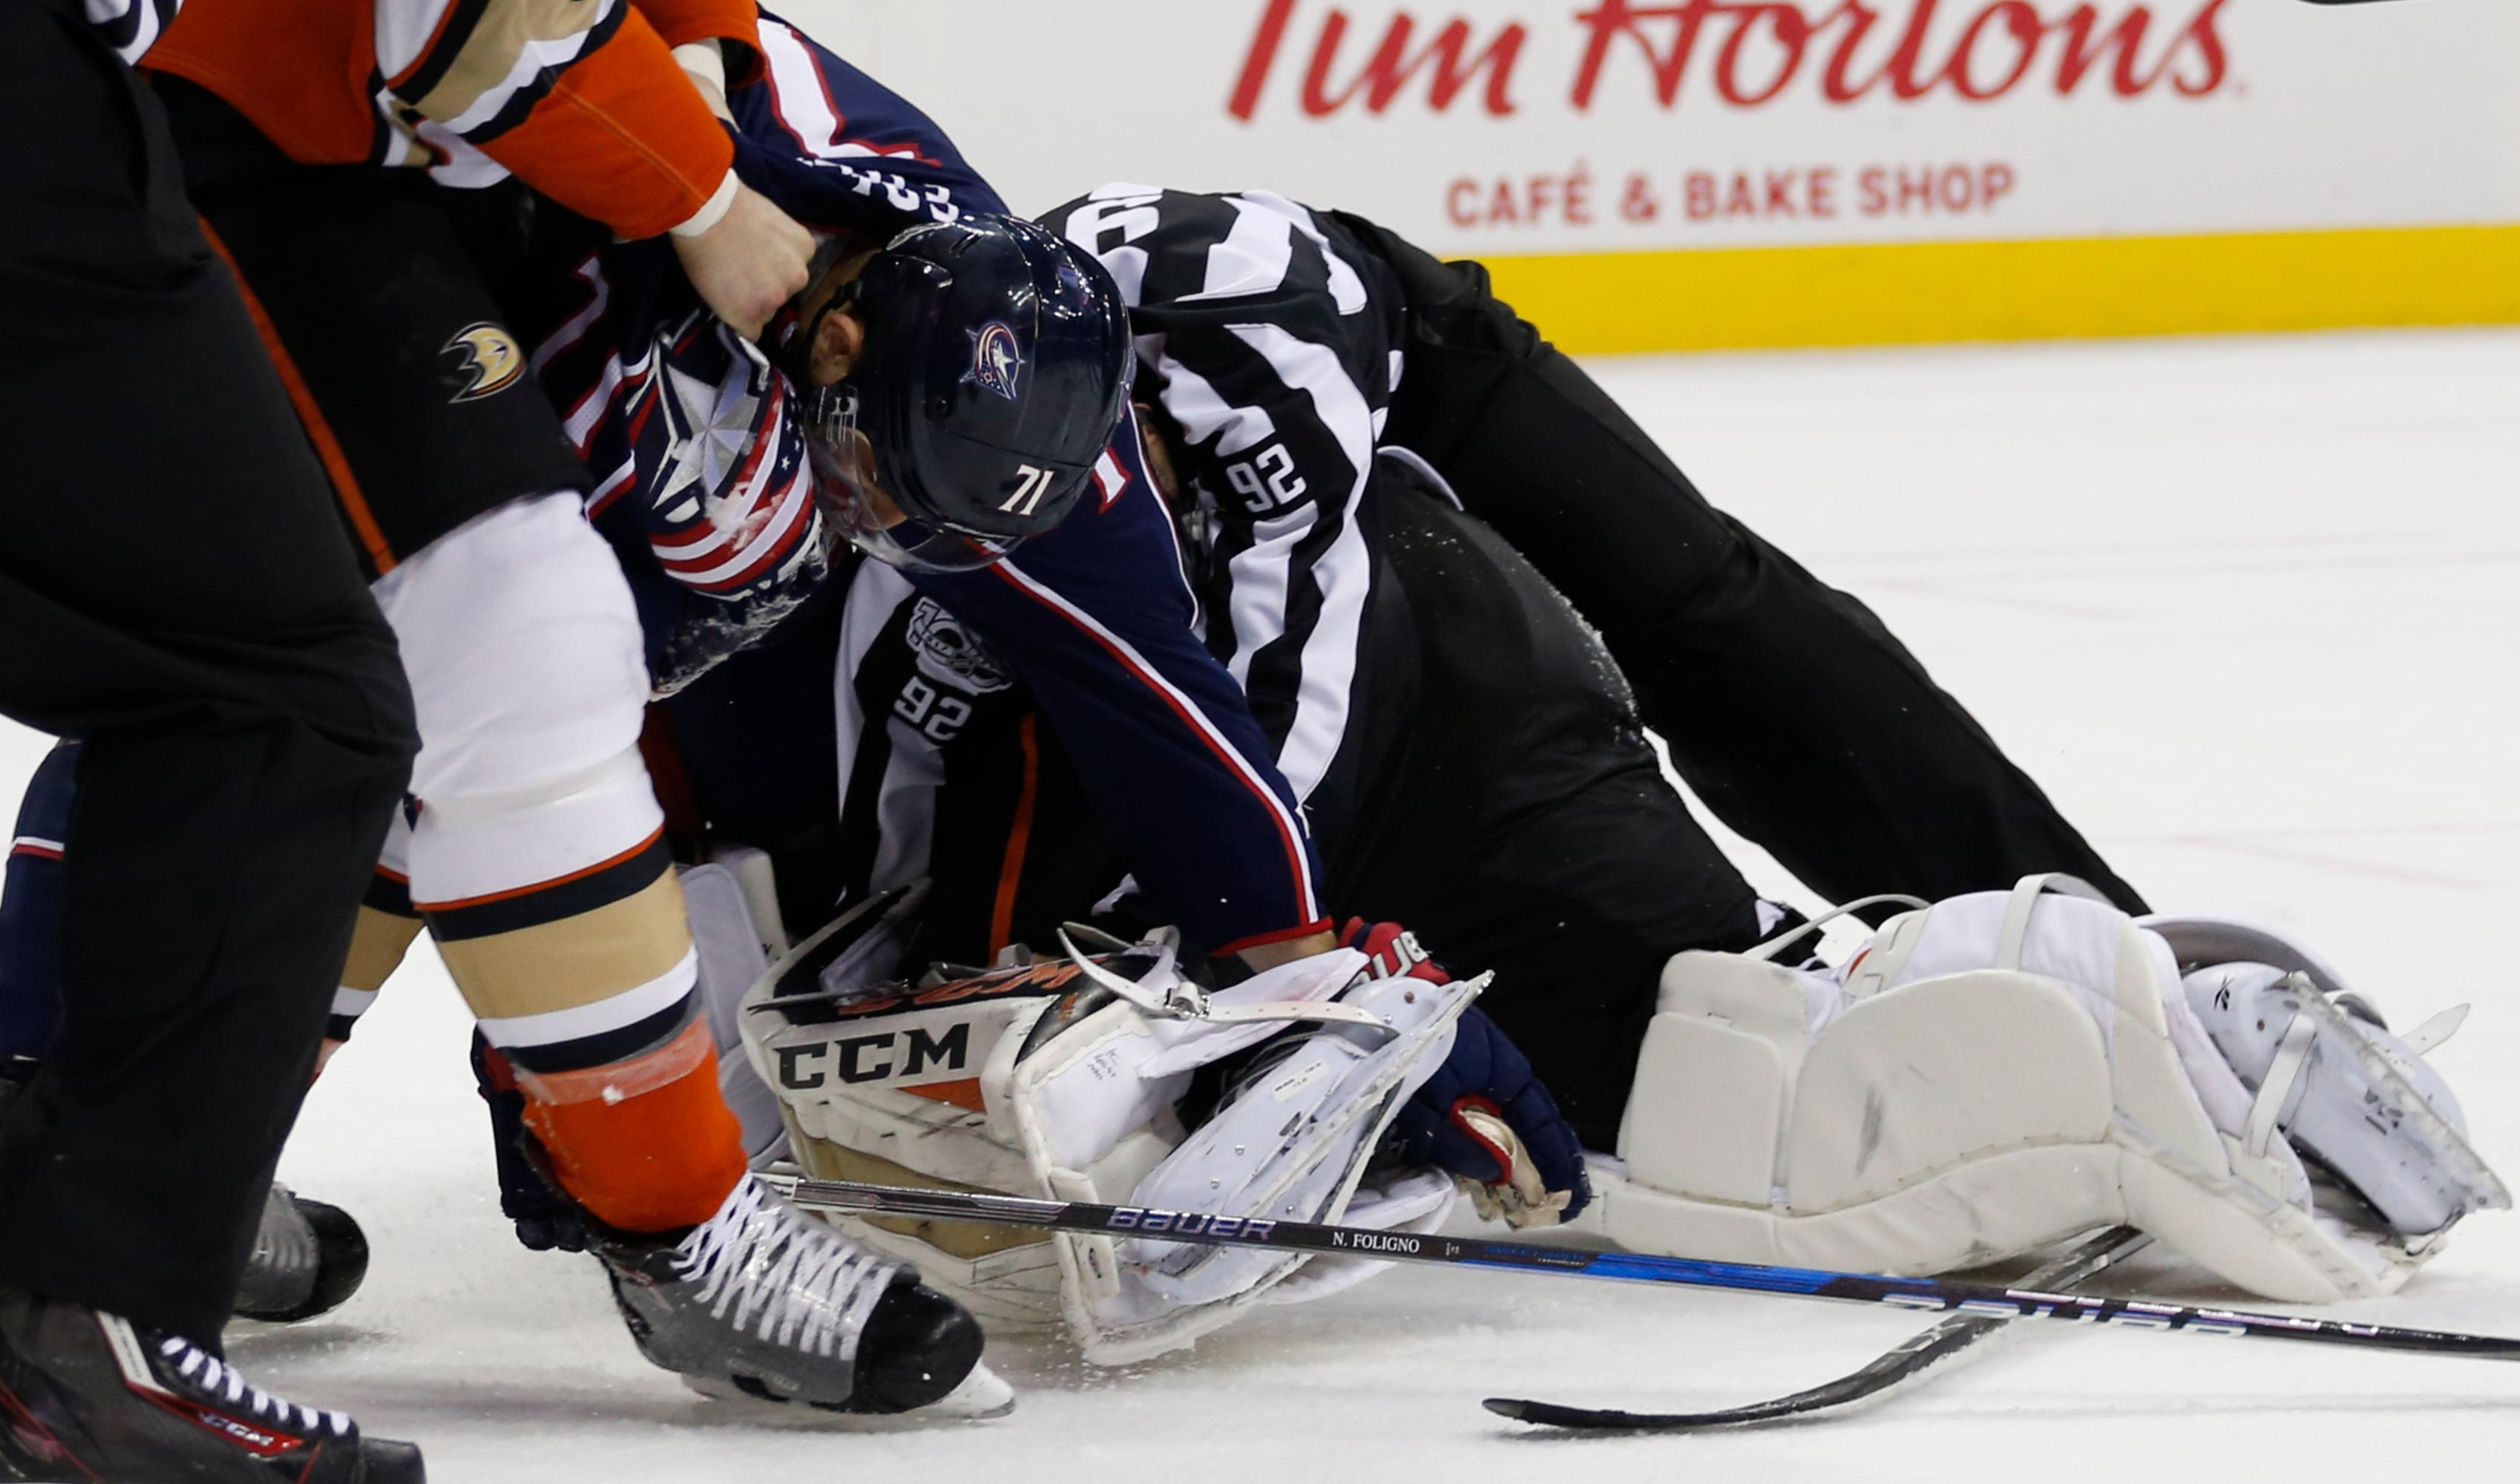 A referee tries to separate Columbus Blue Jackets' Nick Foligno (71) and Anaheim Ducks goalie John Gibson after a scuffle during the second period of an NHL hockey game Friday, Dec. 1, 2017, in Columbus, Ohio. (AP Photo/Jay LaPrete)